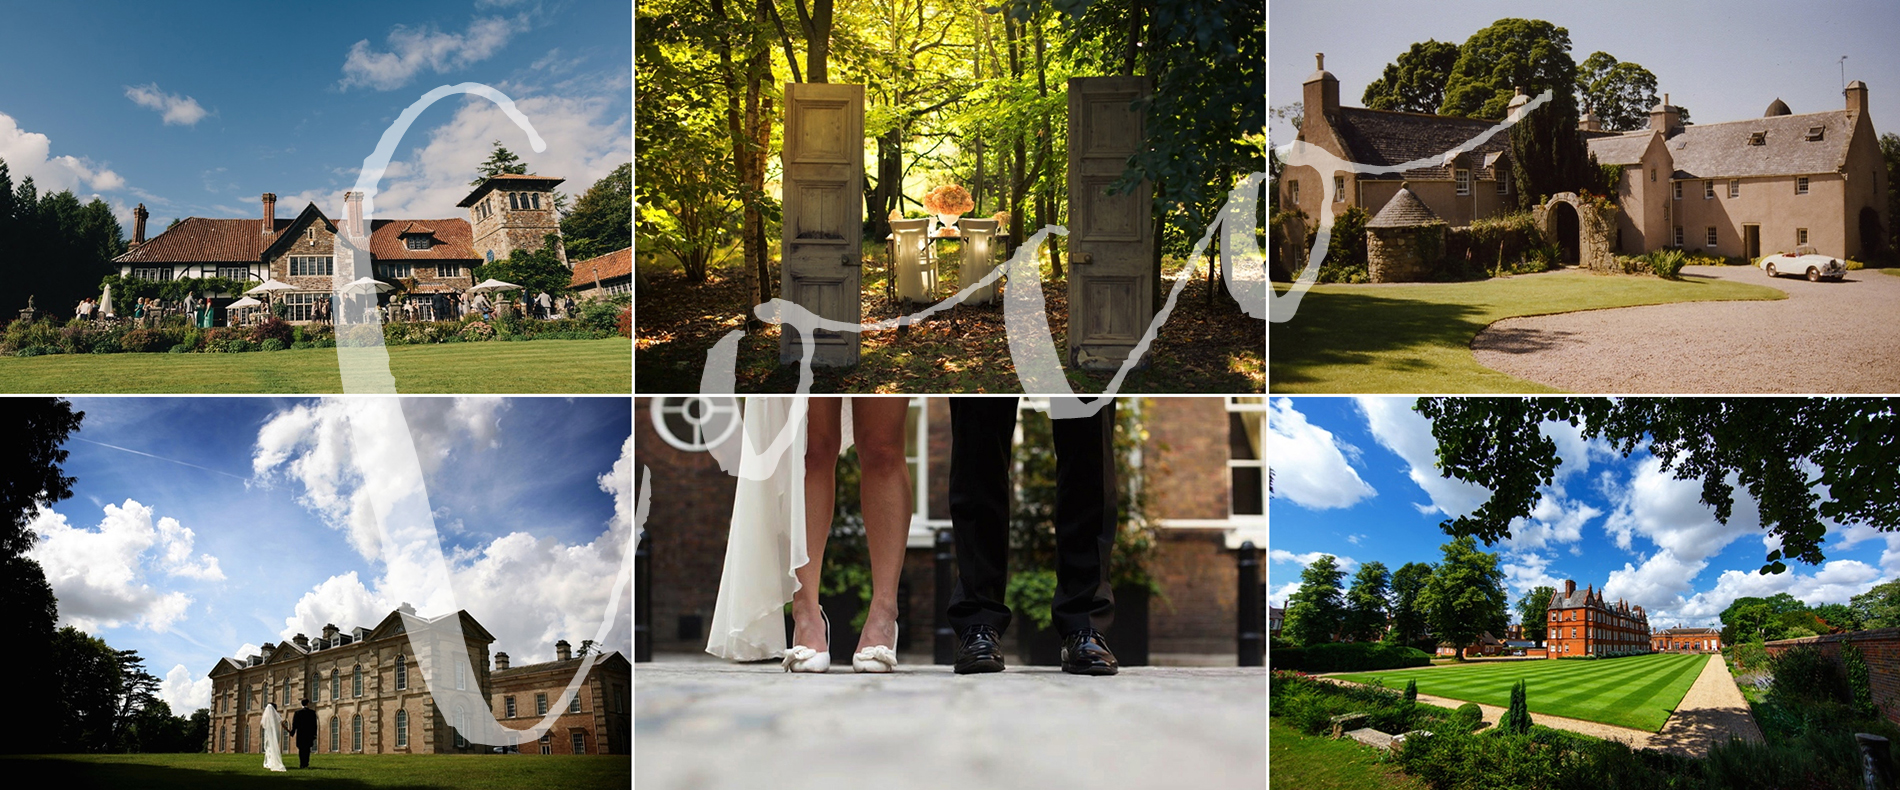 Coco Wedding Venues - Coco Collection - Collage.